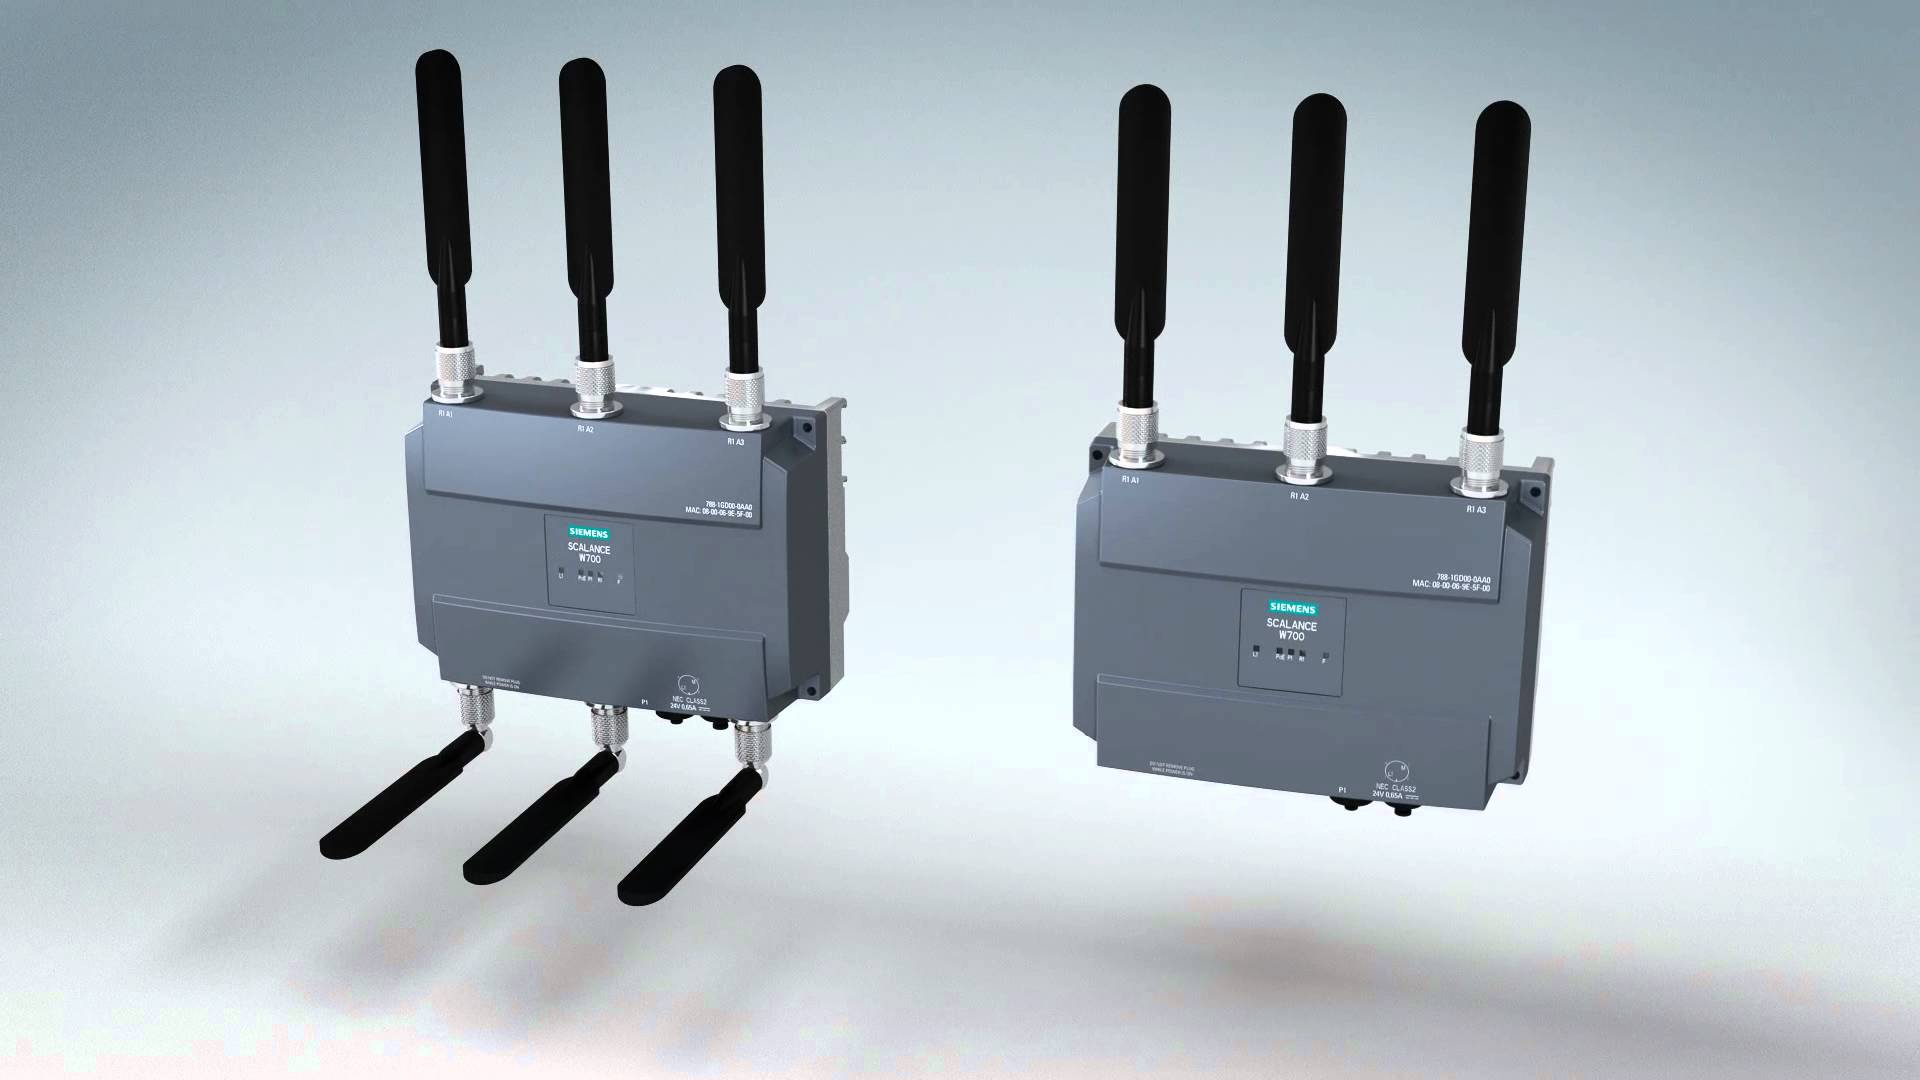 802.11n Wireless in Heavy Industry